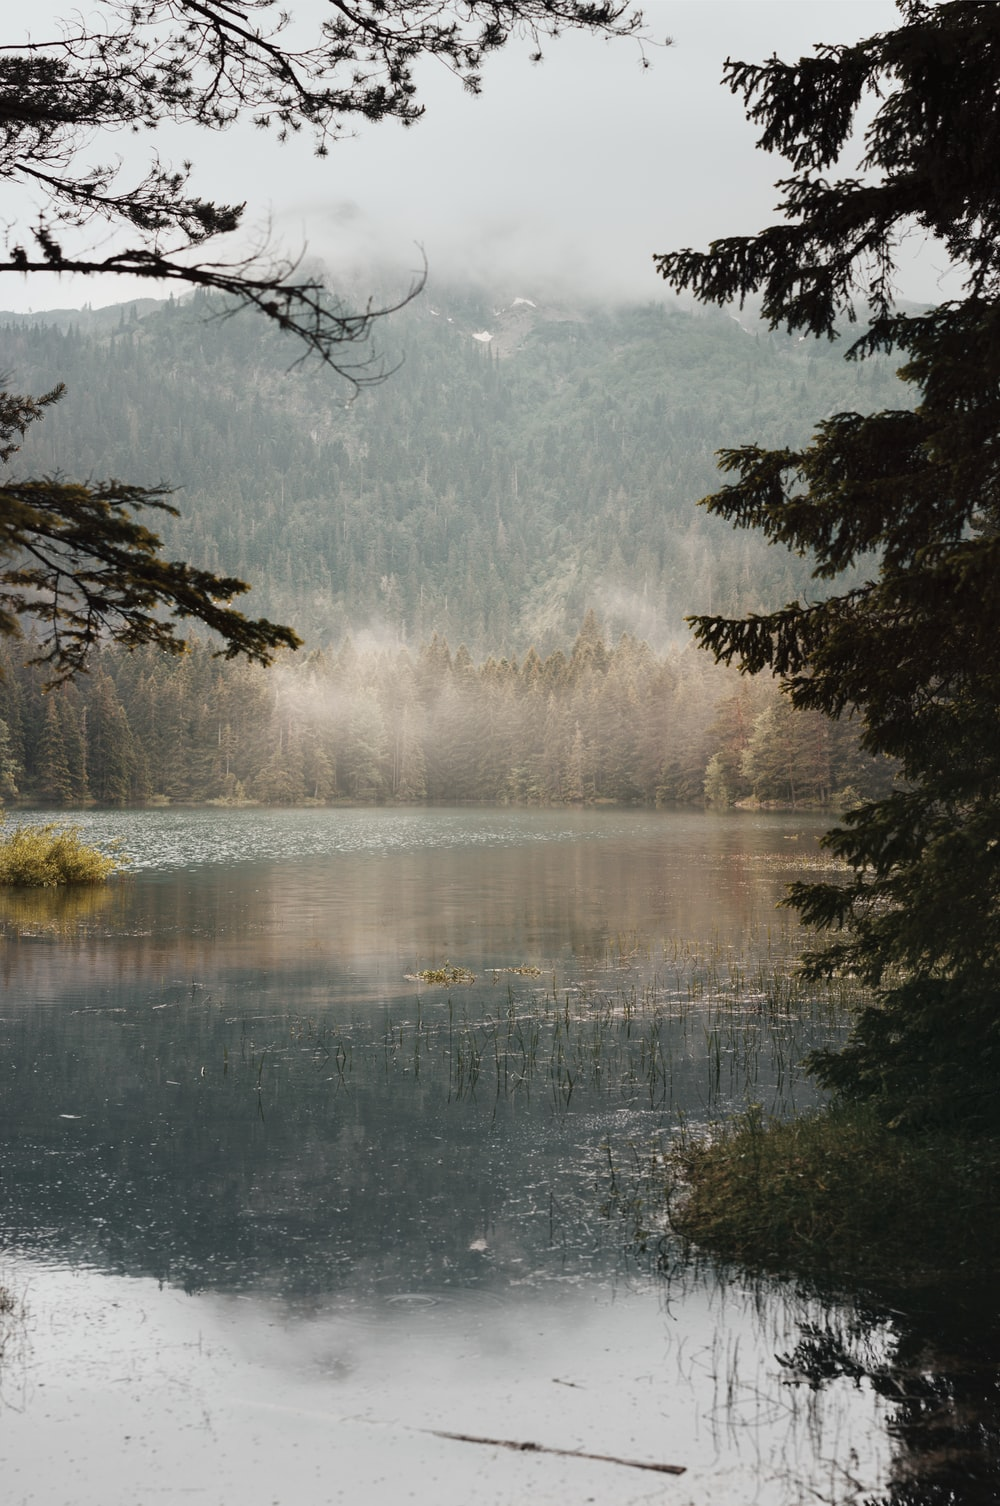 body of water surrounded with trees during daytime